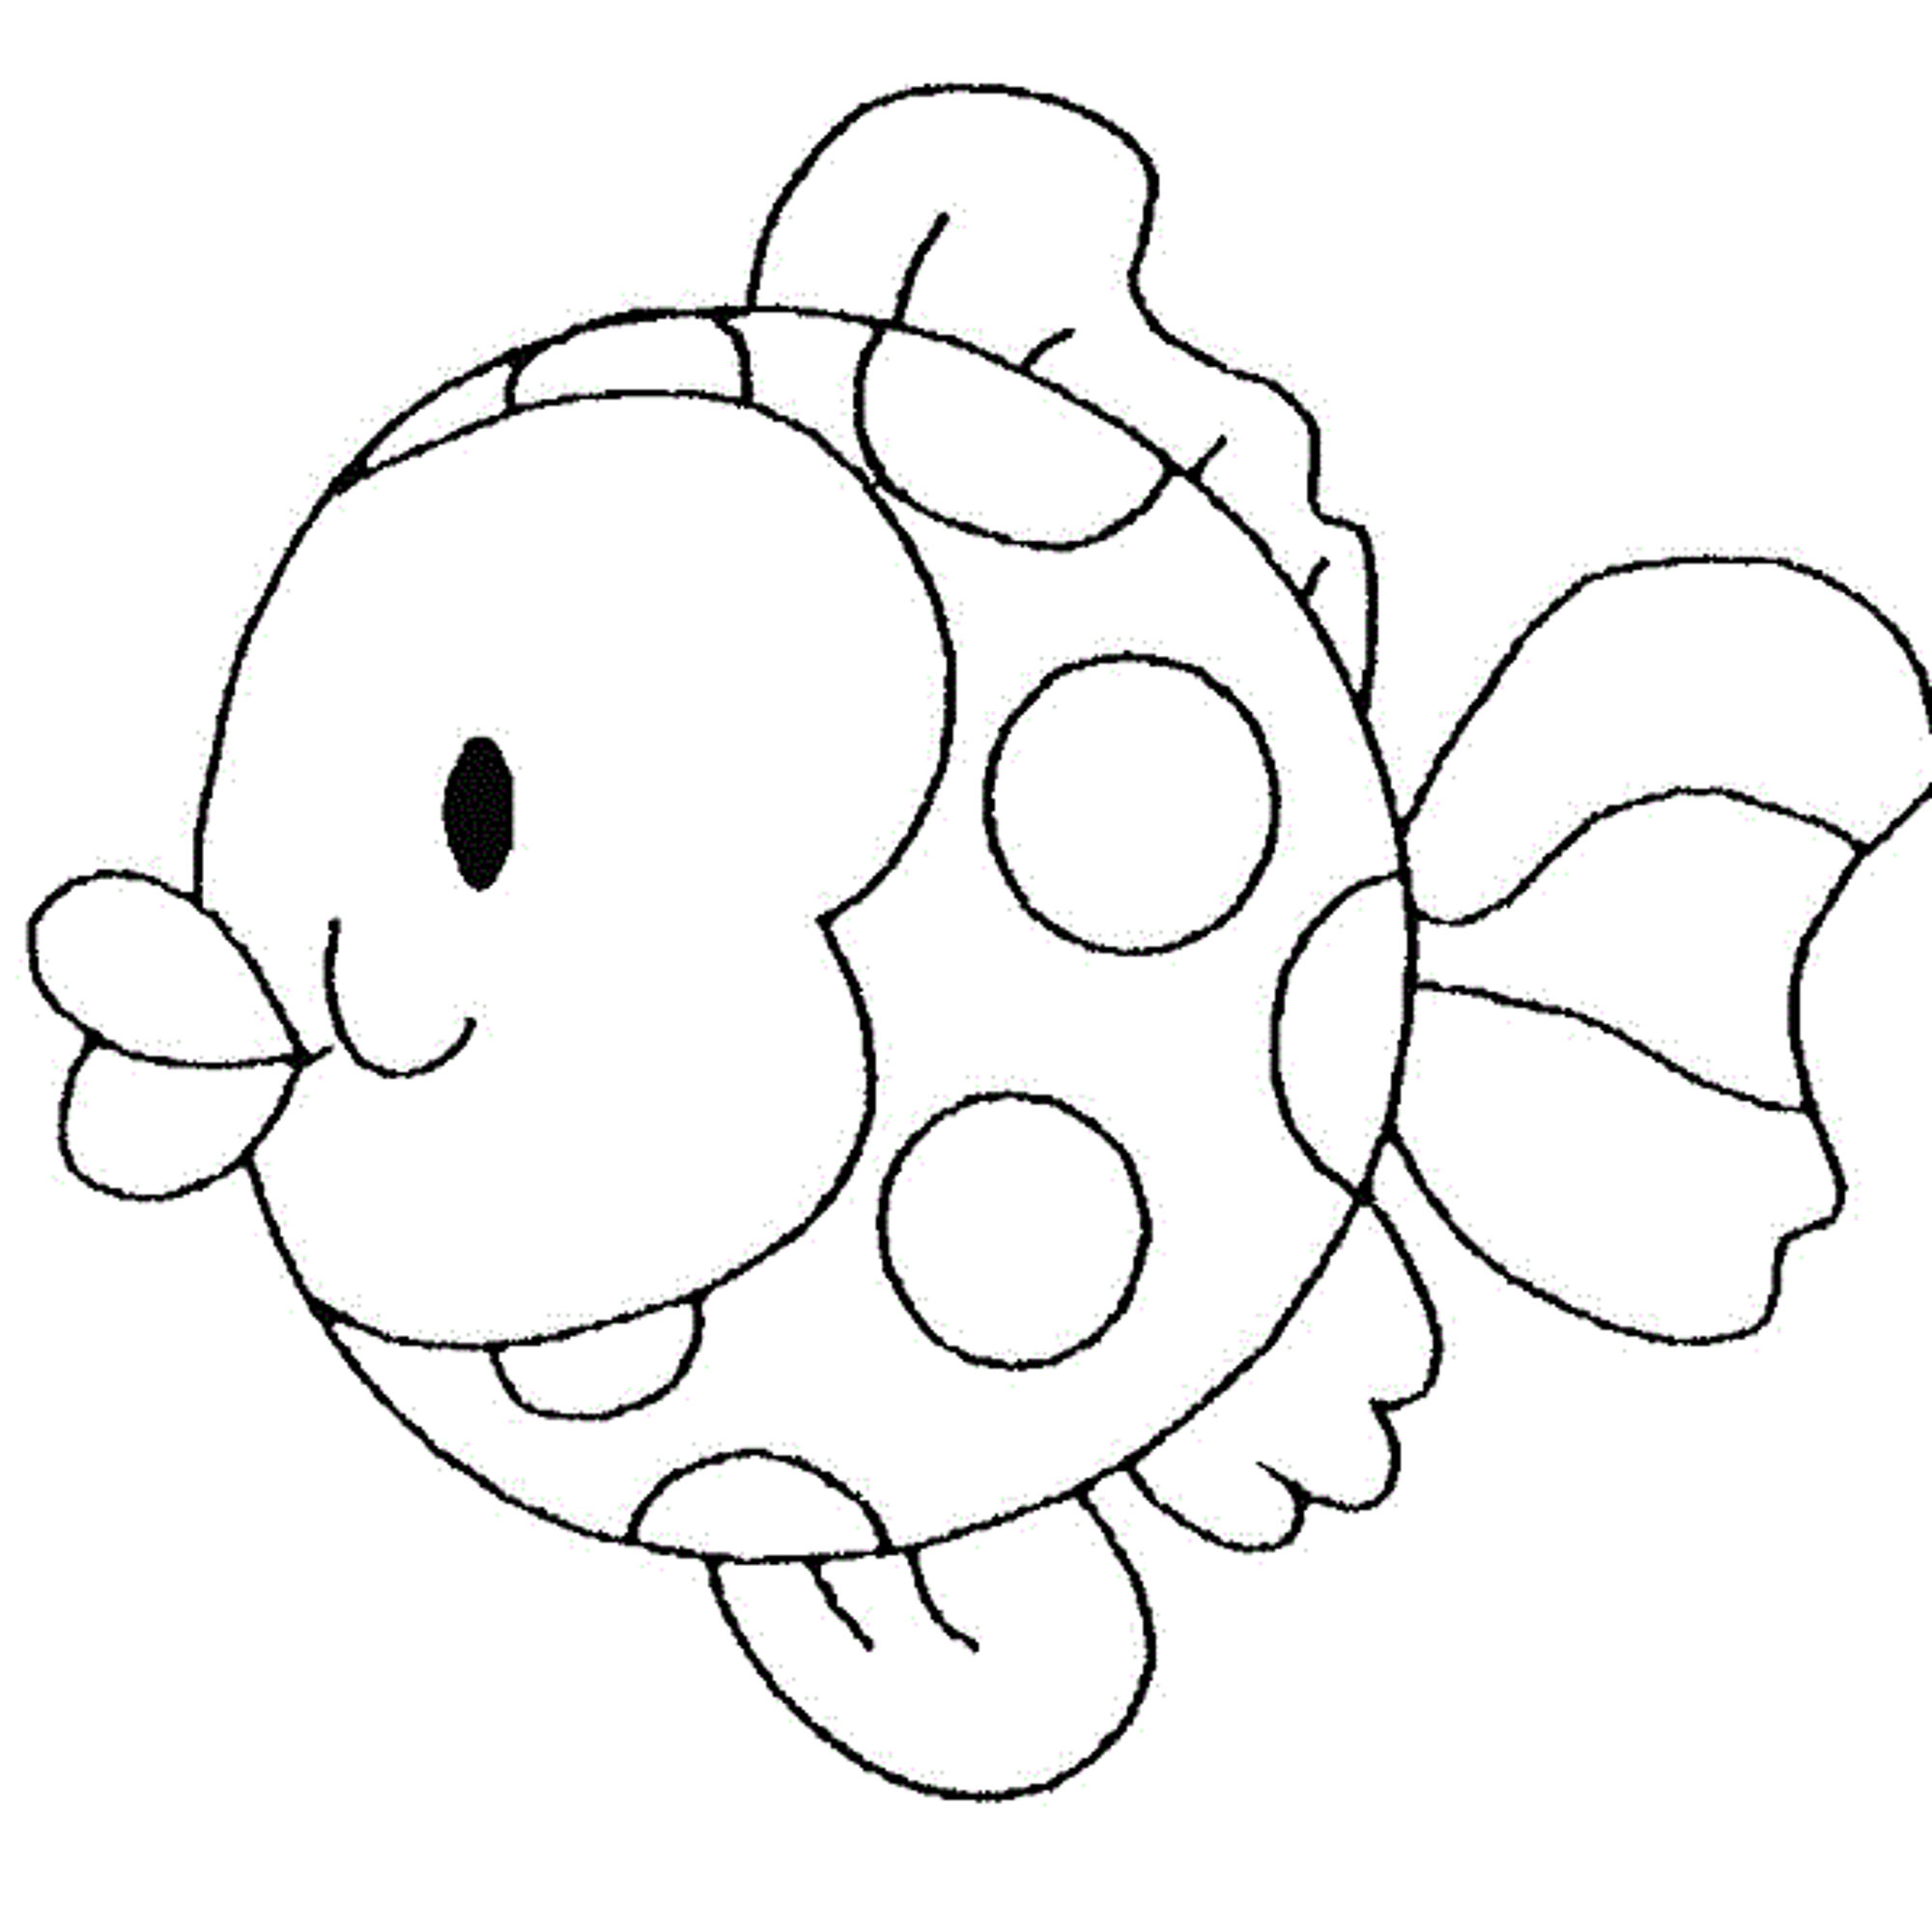 fish coloring pages for toddlers - photo#42